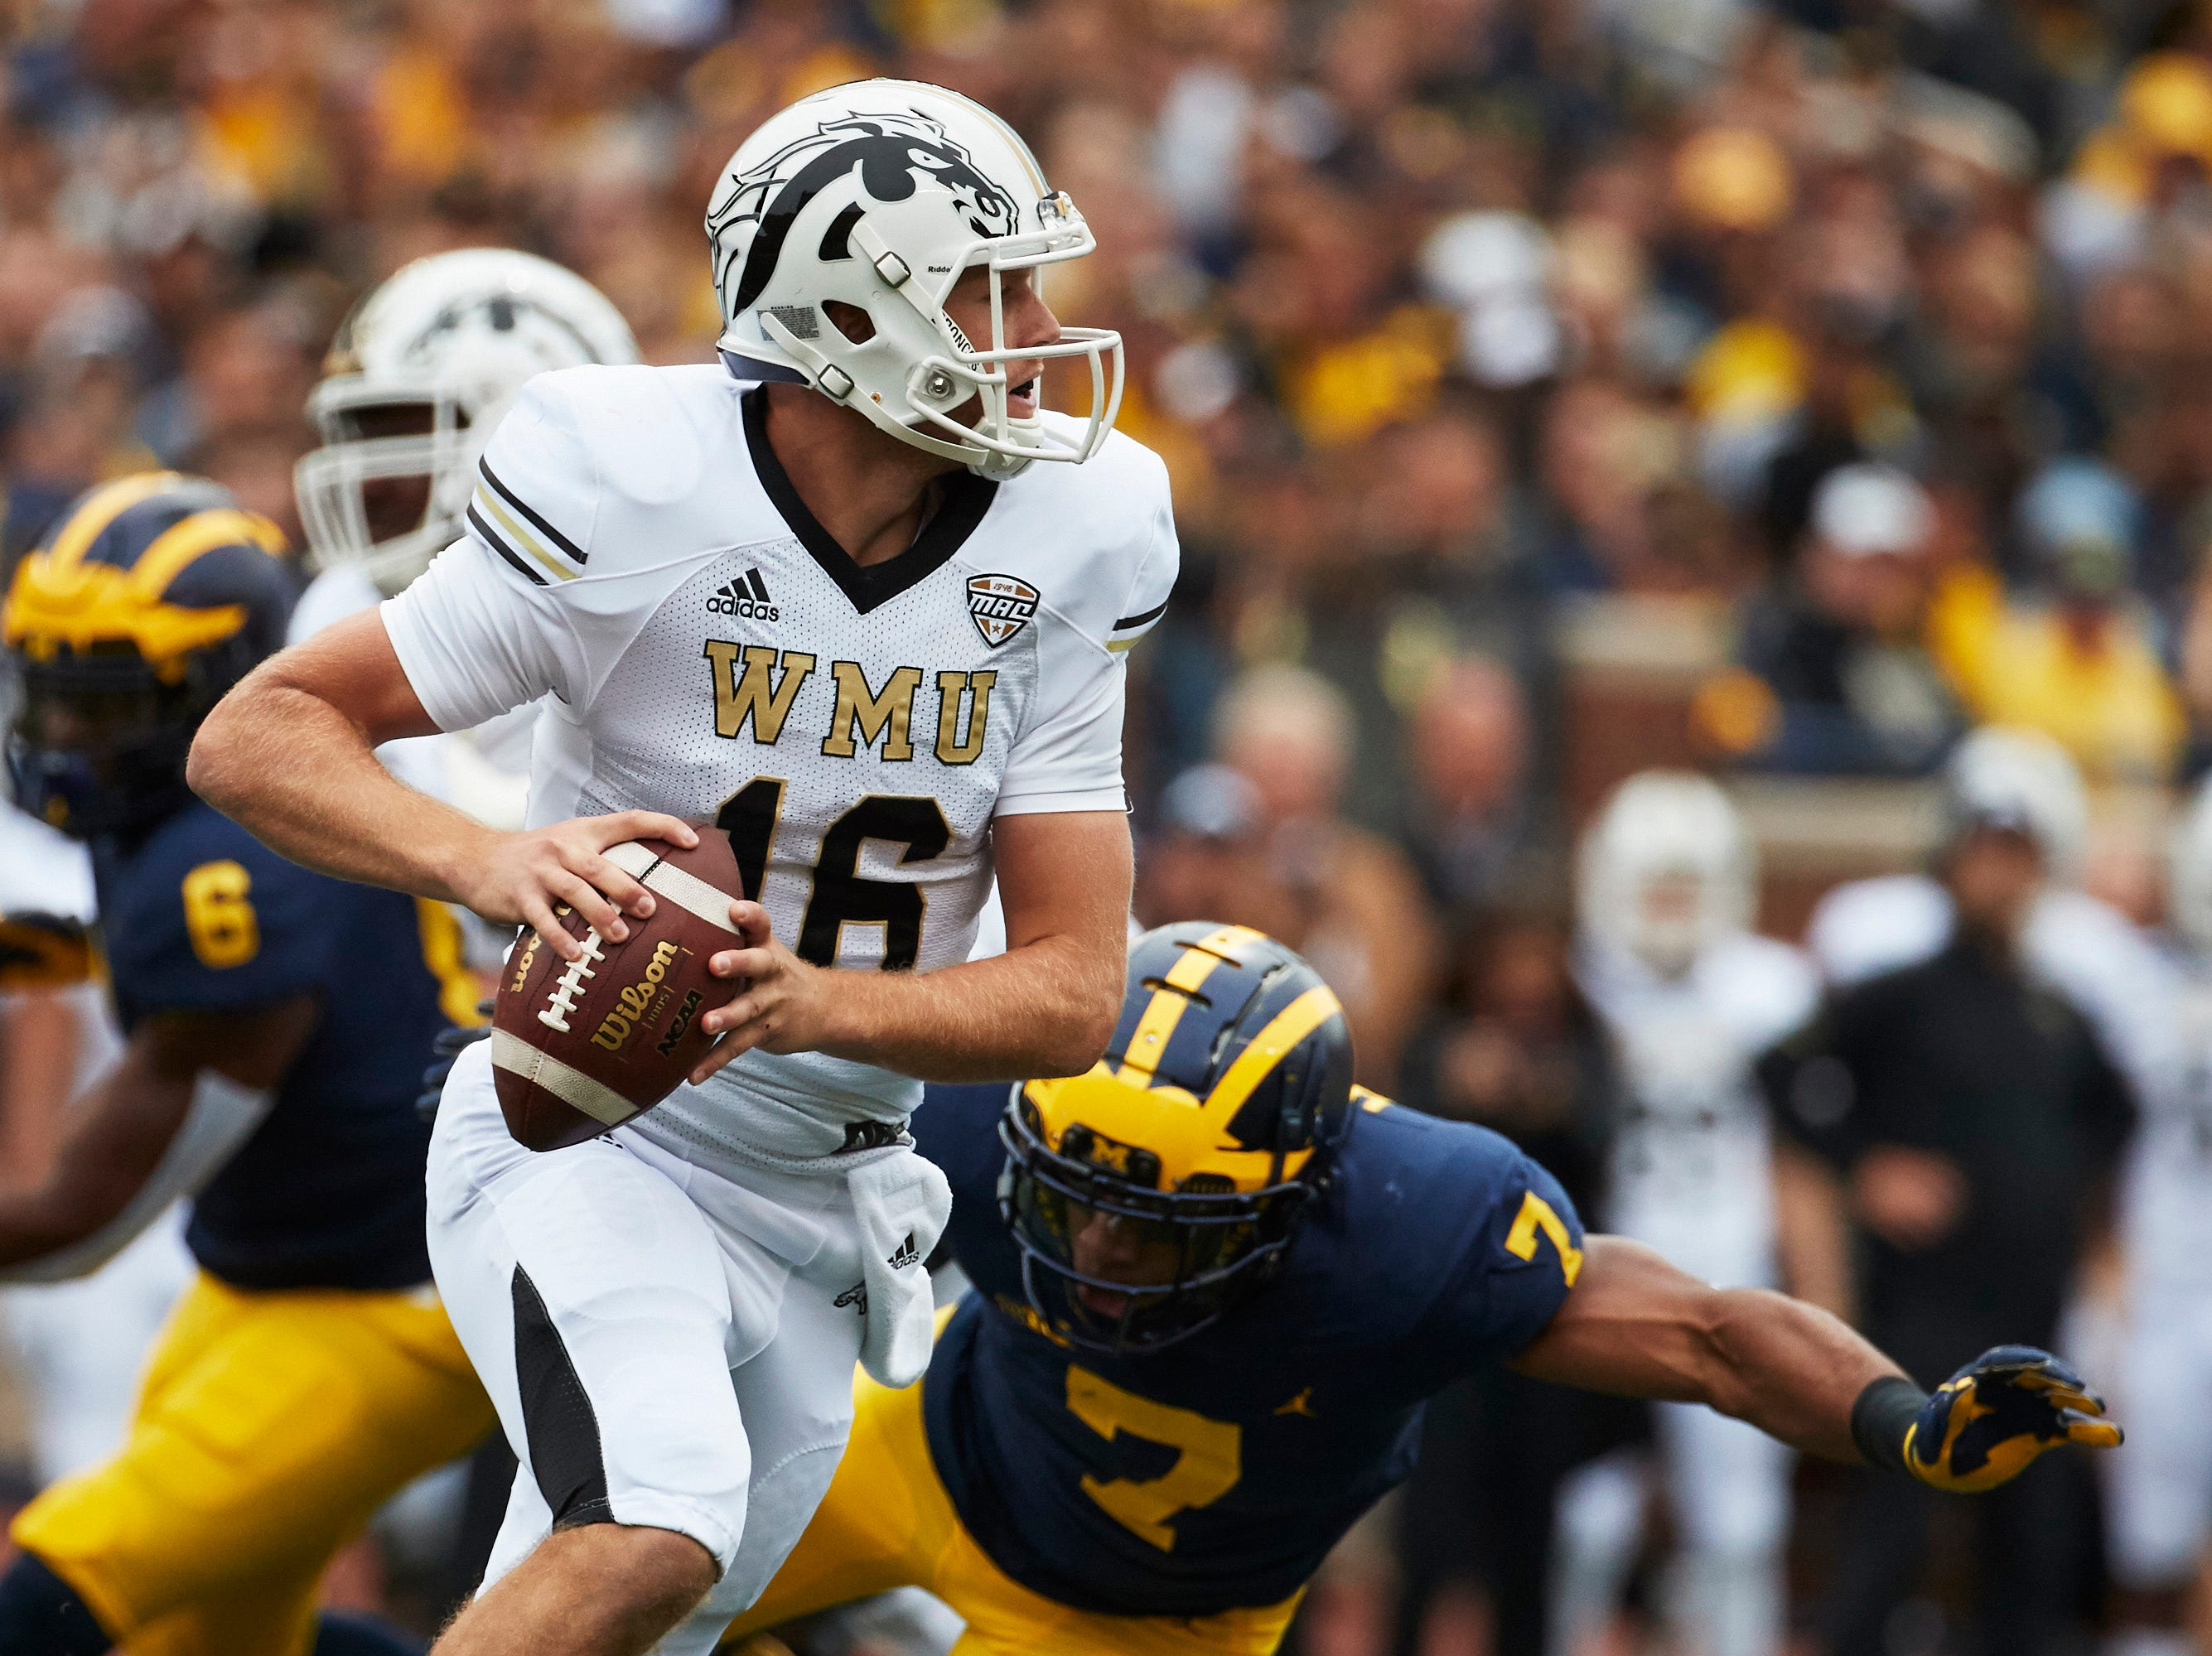 Sep 8, 2018; Ann Arbor, MI, USA; Western Michigan Broncos quarterback Jon Wassink (16) scrambles on Michigan Wolverines linebacker Khaleke Hudson (7) in the first half at Michigan Stadium. Mandatory Credit: Rick Osentoski-USA TODAY Sports